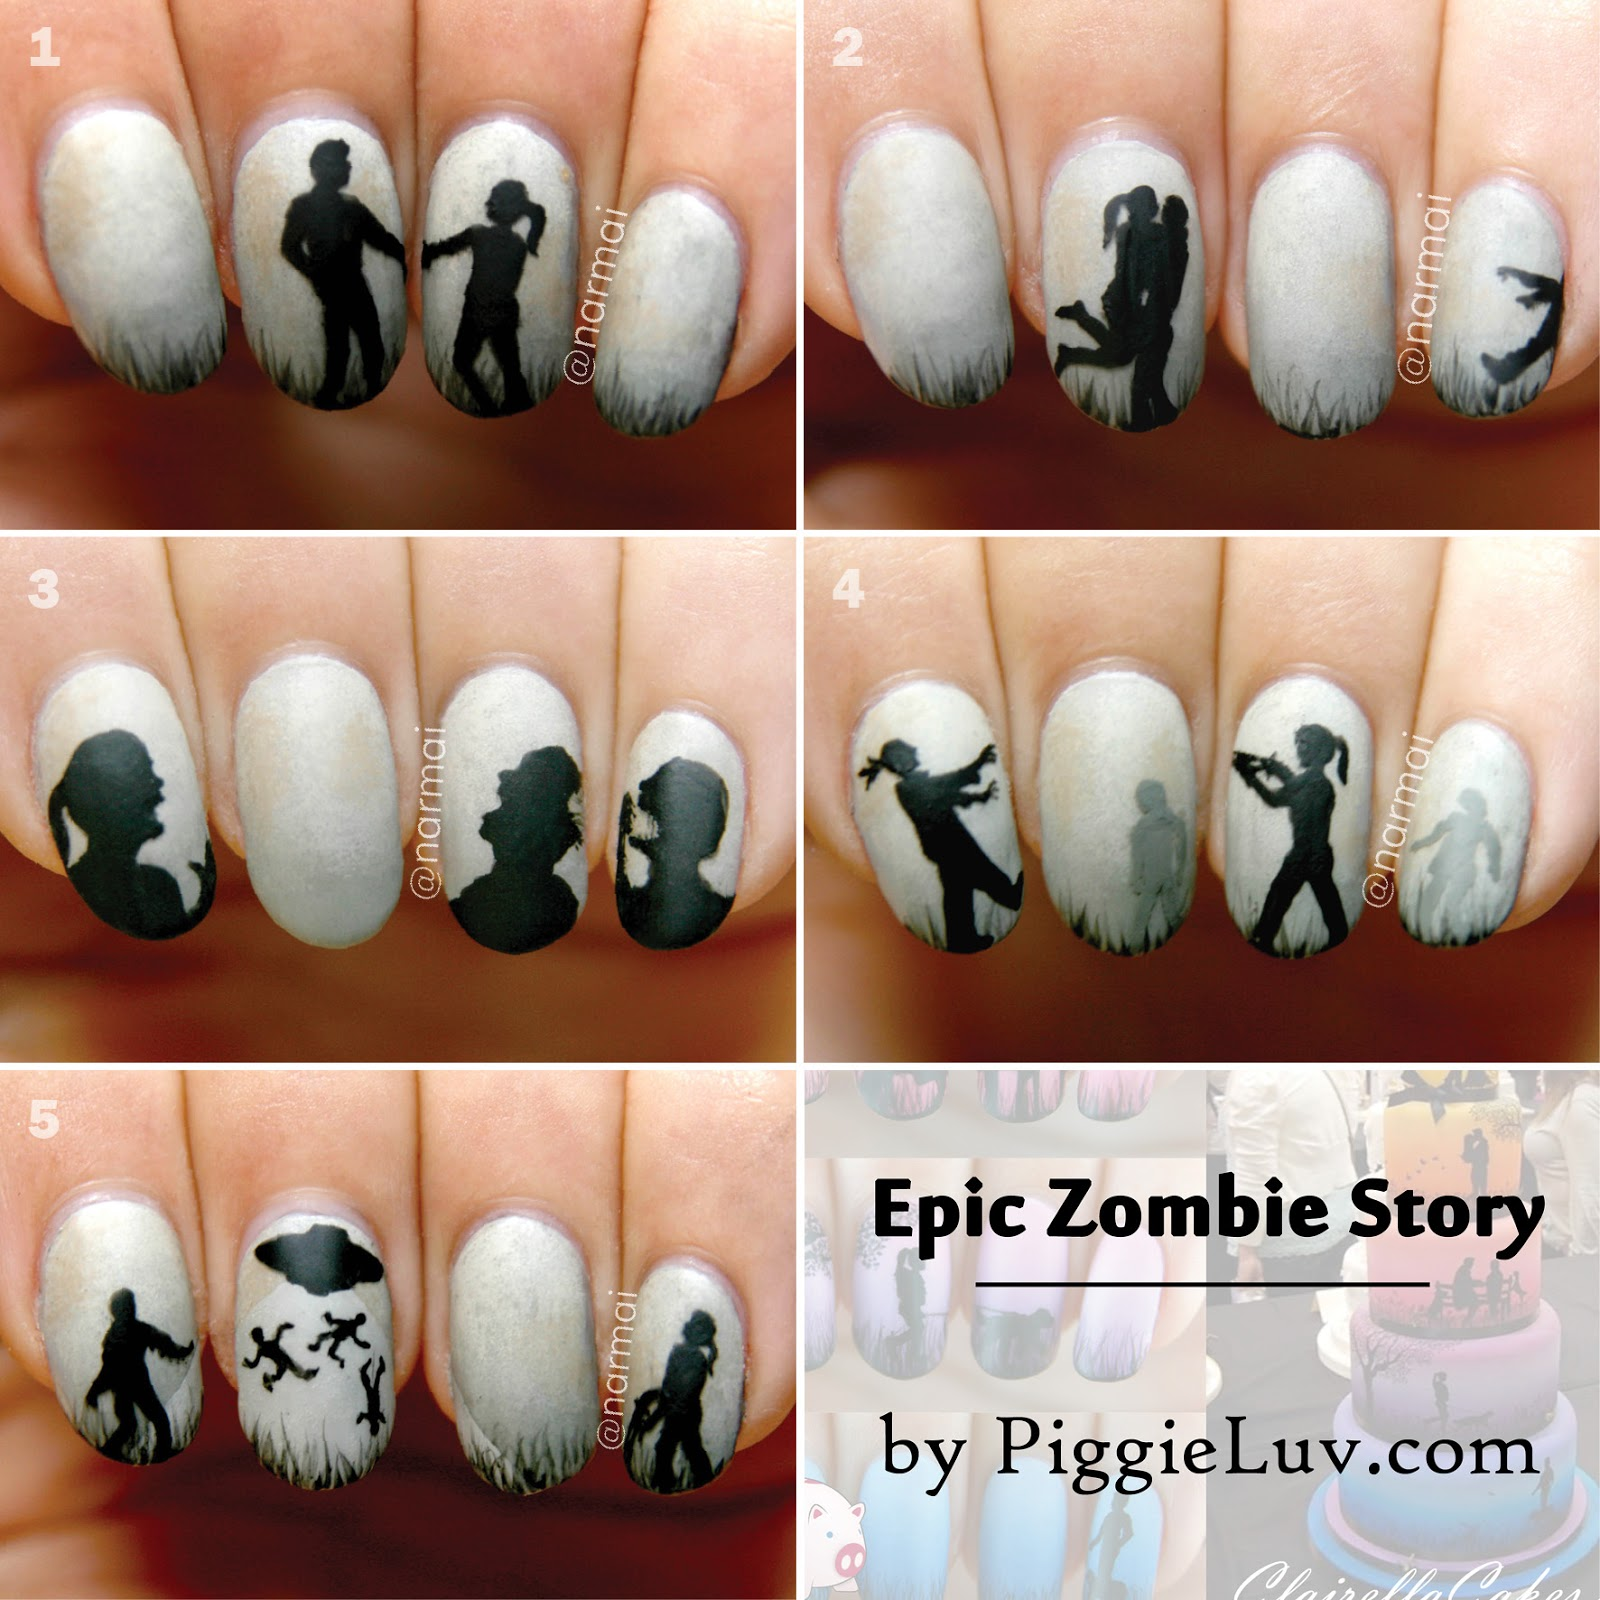 Epic Zombie Story